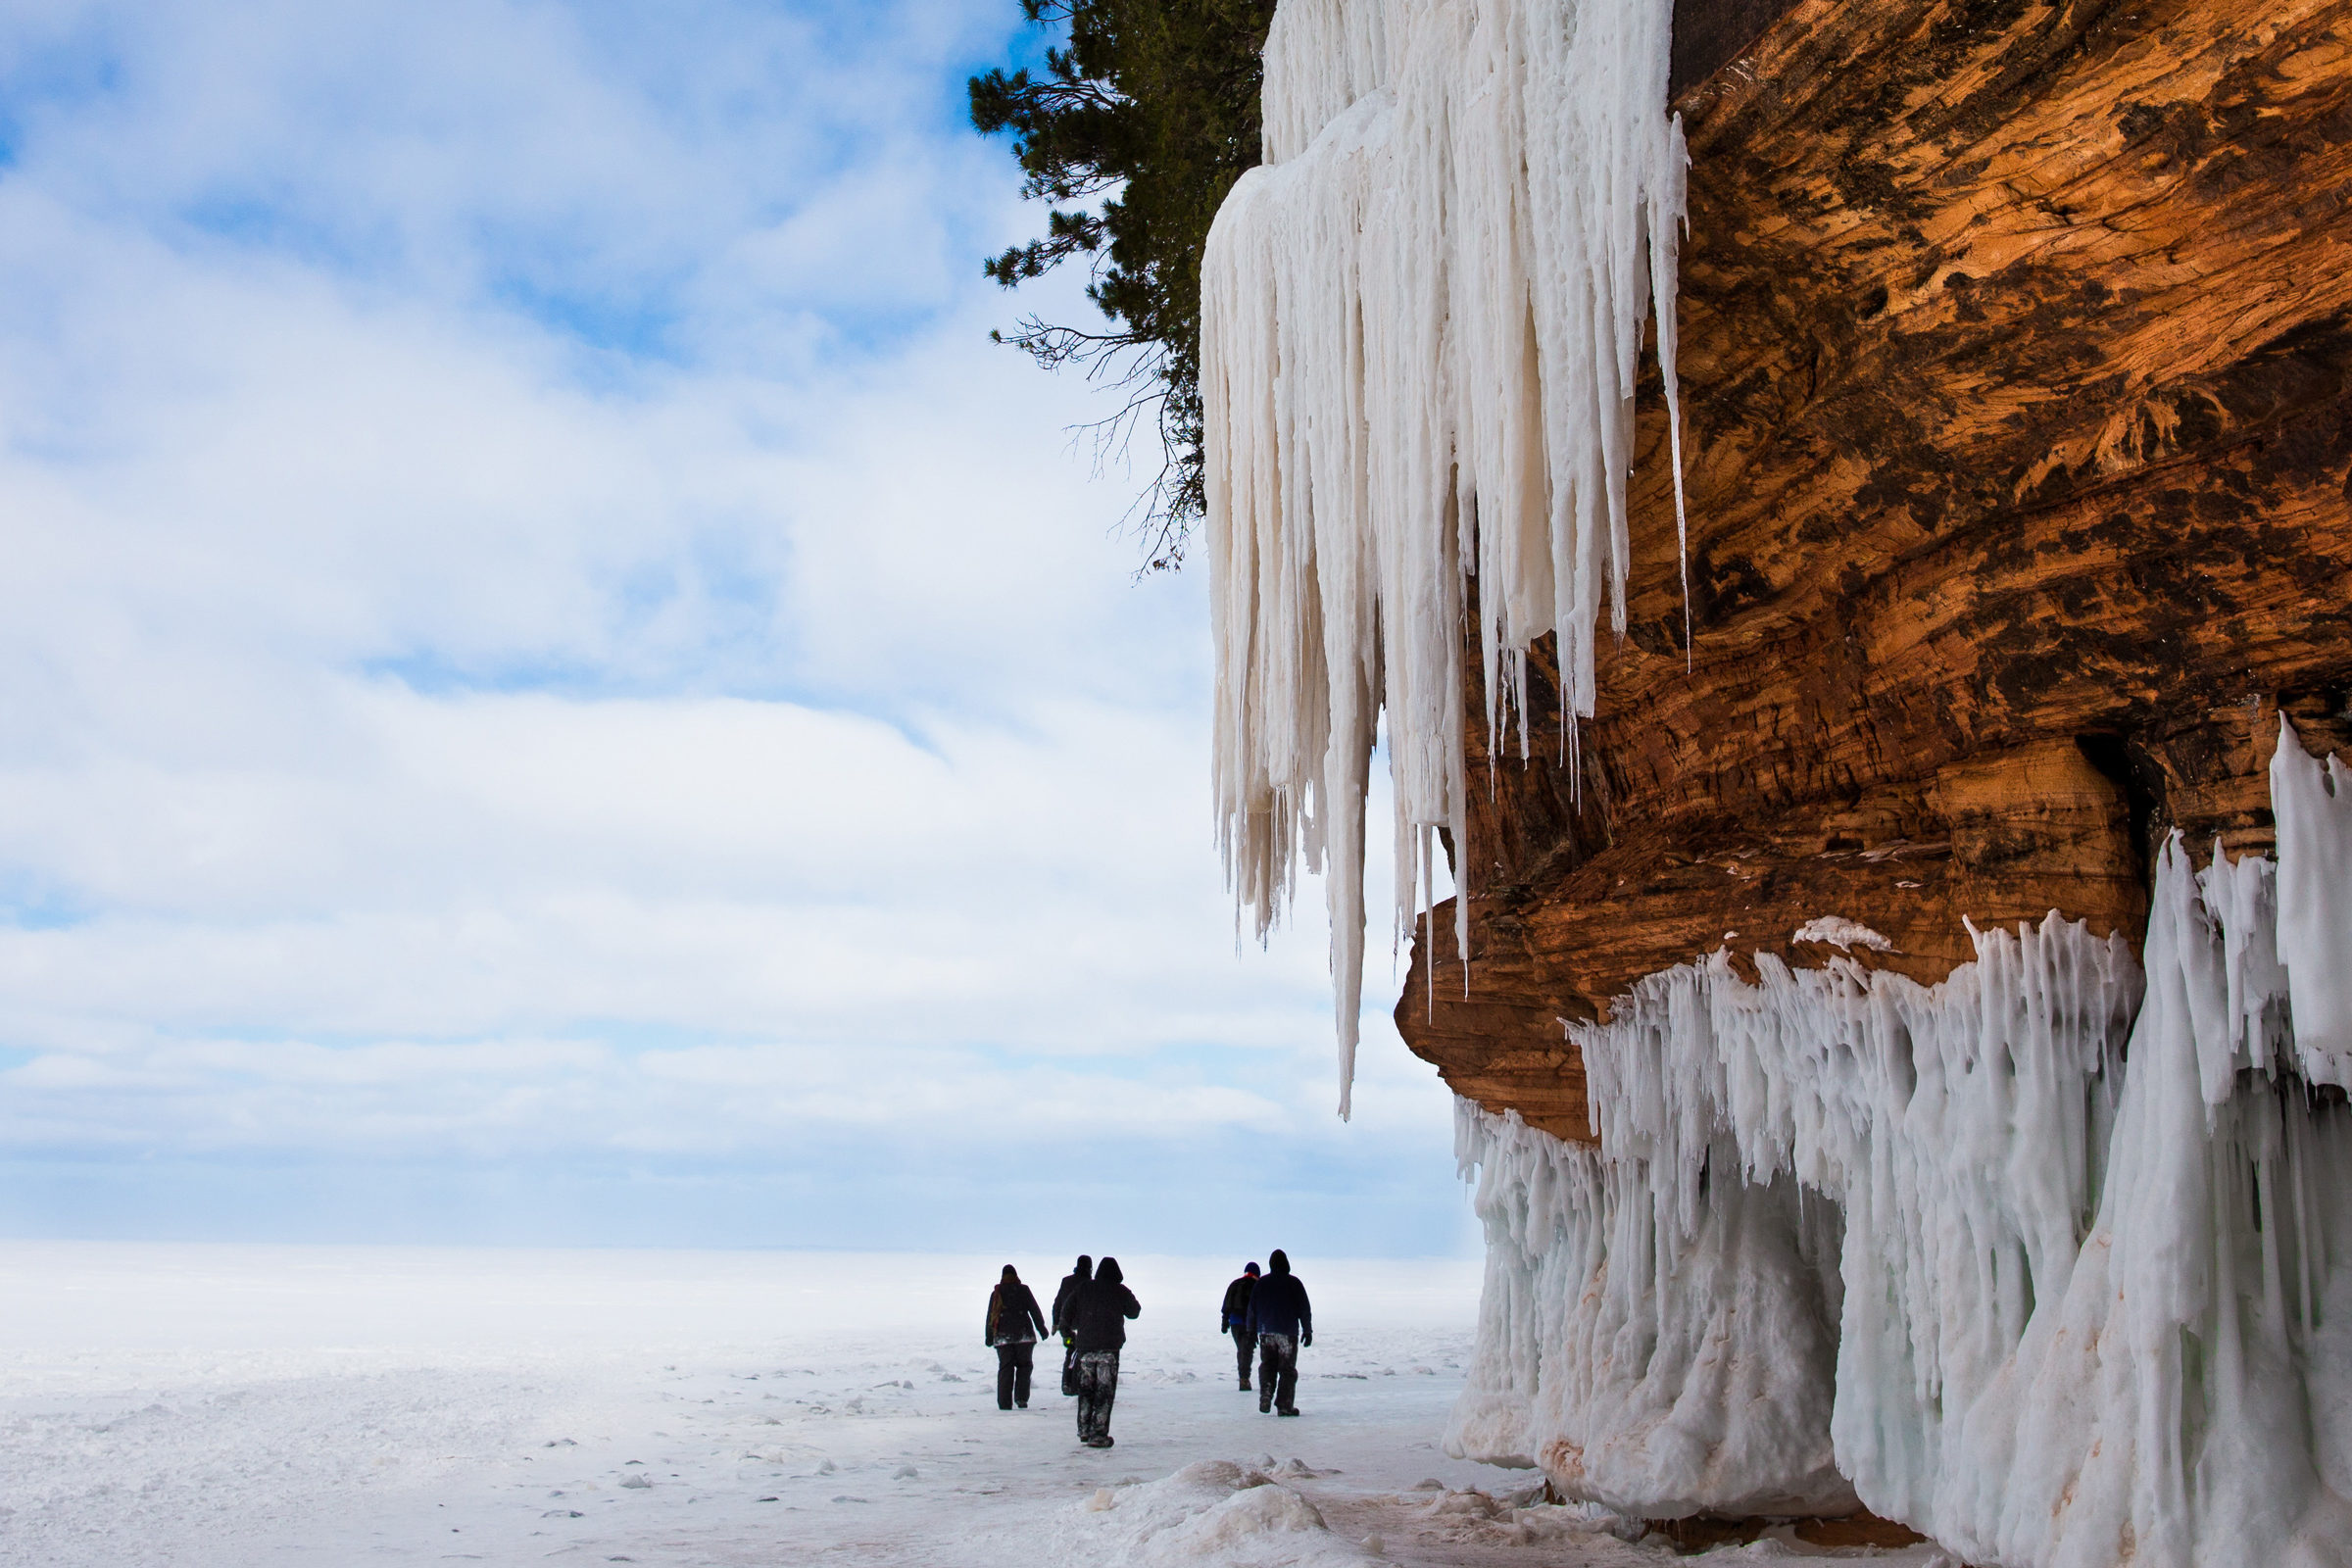 People walking outside ice caves. Photo: Getty Images